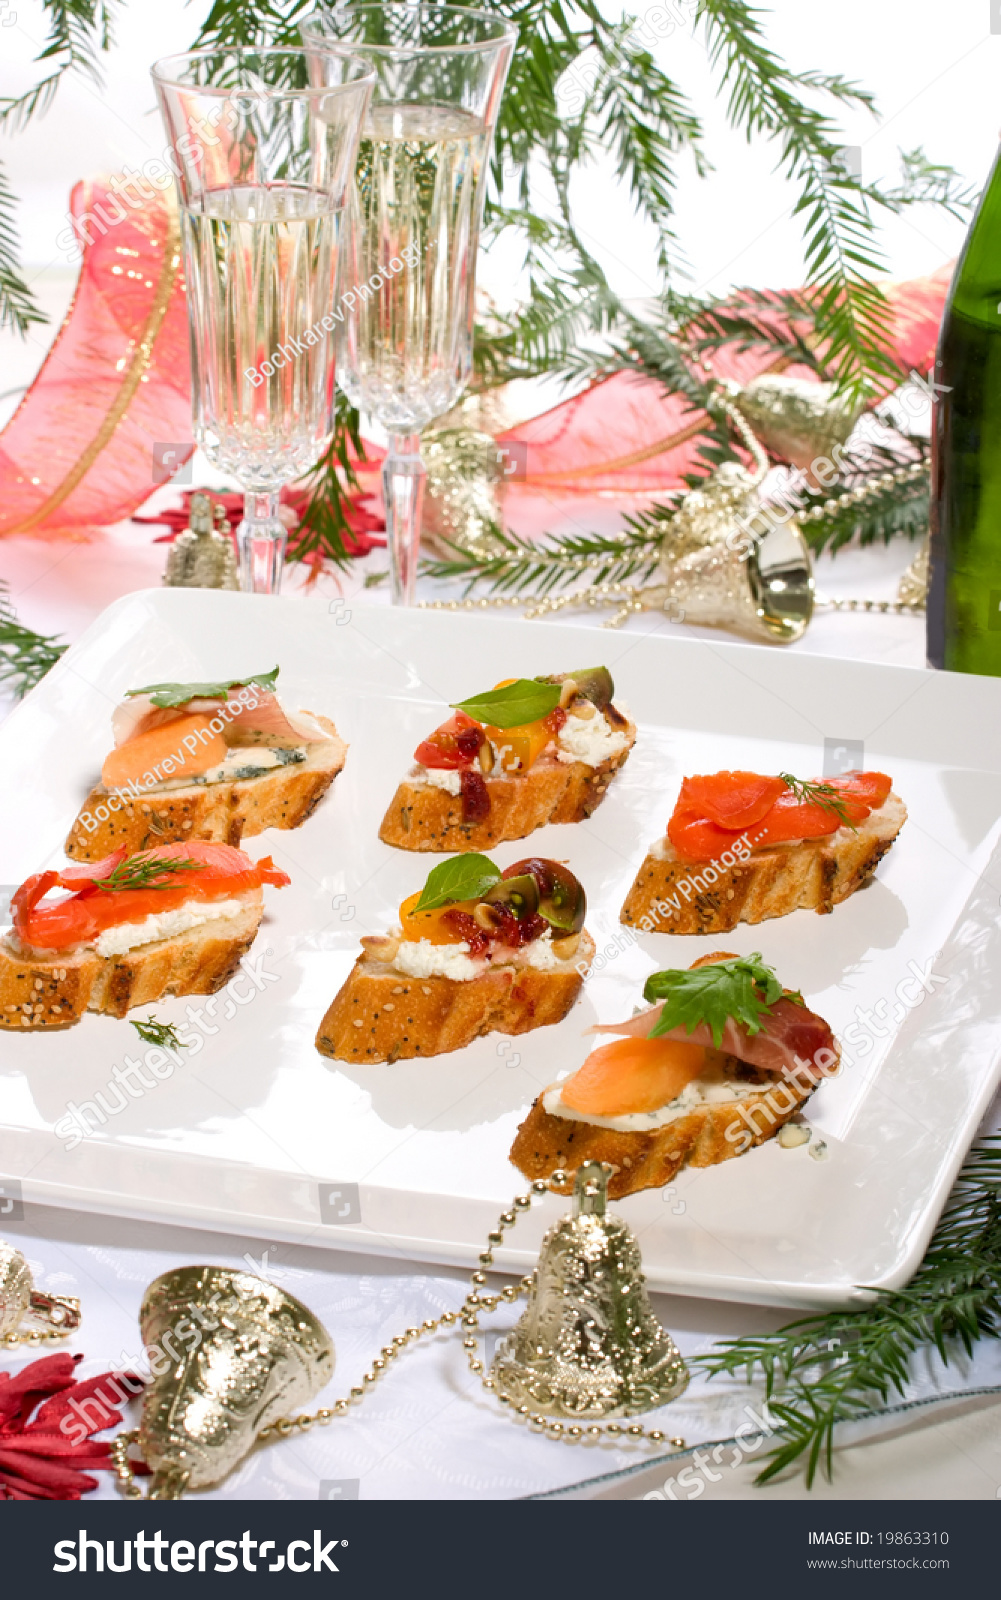 Holiday table full canapessandwiches champagne christmas for Canape sandwiches